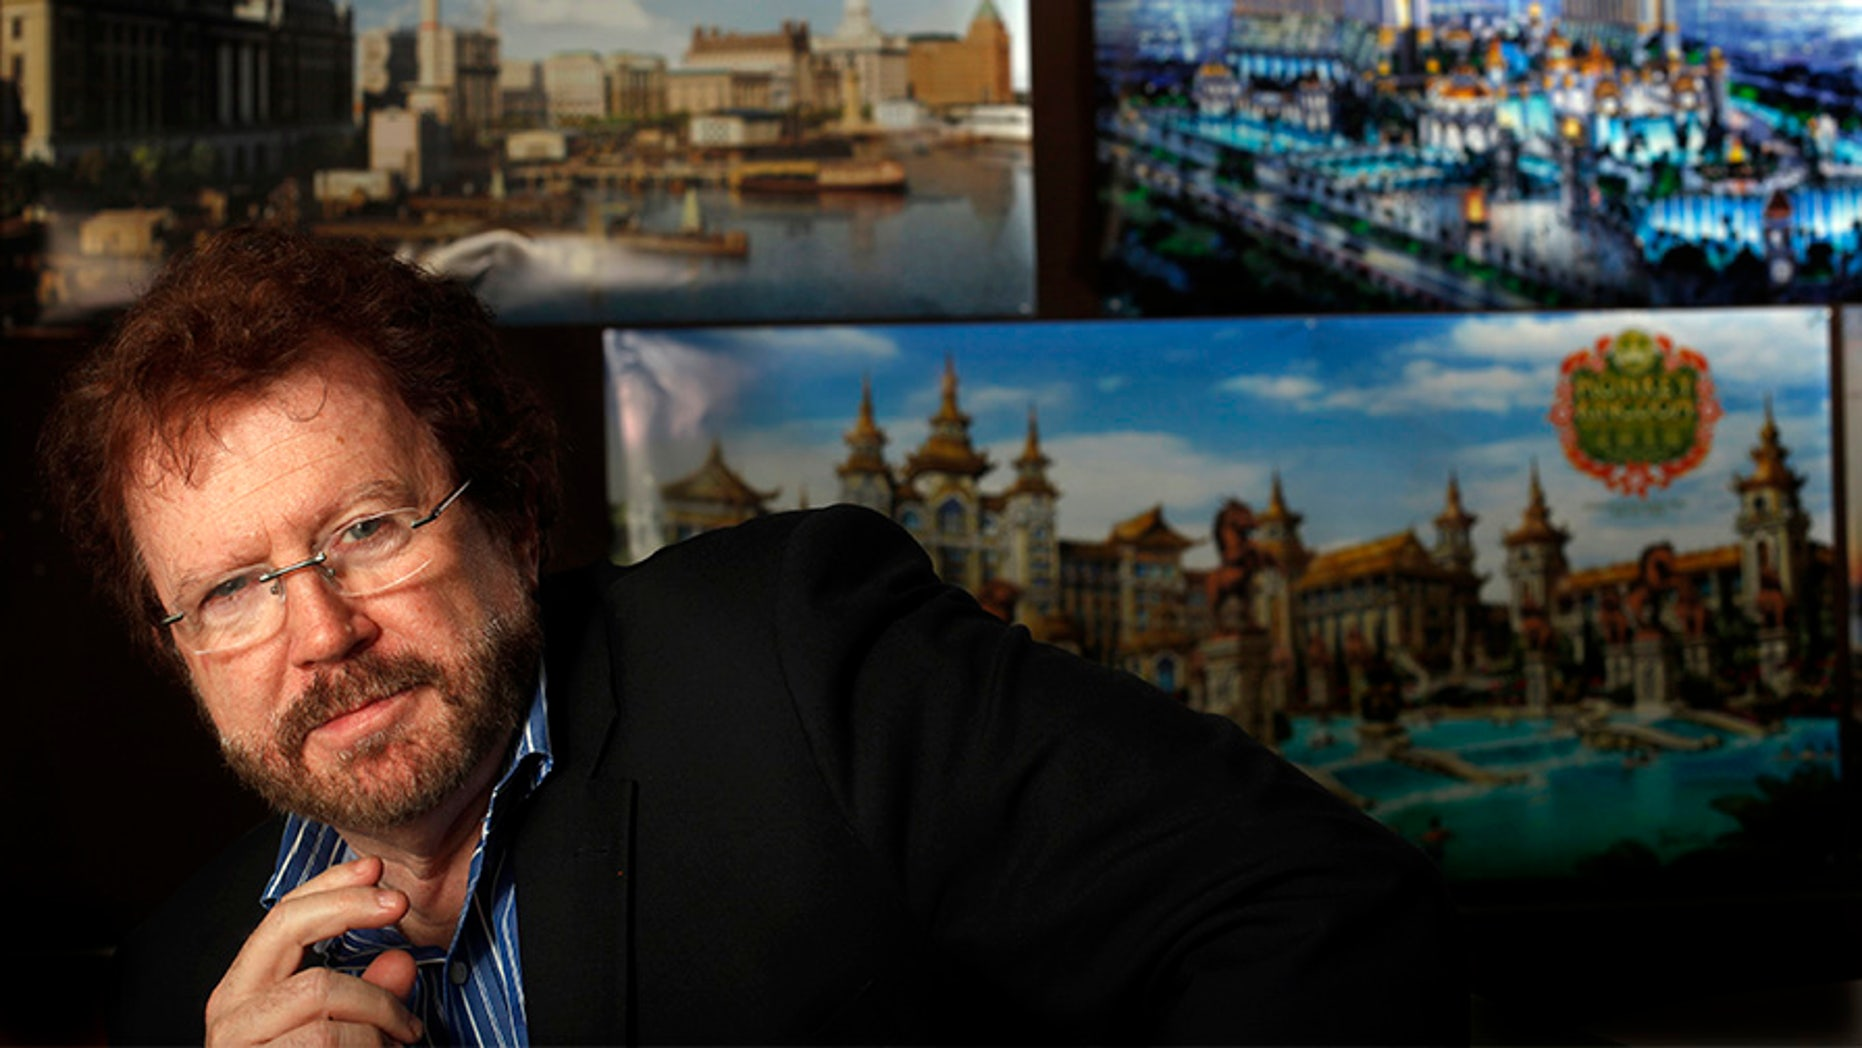 NORTH HOLLYWOOD, CA - JANUARY 15, 2015: Gary Goddard Entertainment founder, Gary Goddard, in his North Hollywood office meeting room with posters of projects he has working in China on JANUARY 15, 2015.  Gary Goddard Entertainment is among many Southern California theme park design businesses that have been getting work in China thanks to a surge in demand for leisure activities in Asia. The posters left to right top row show: the Hengdian Studios recreation of the Shanghai Bund, and the Galaxy Theme Park in Macau and the lower one, the Monkey Kingdom theme park, currently being constructed.  (Photo by Bob Chamberlin/Los Angeles Times via Getty Images)